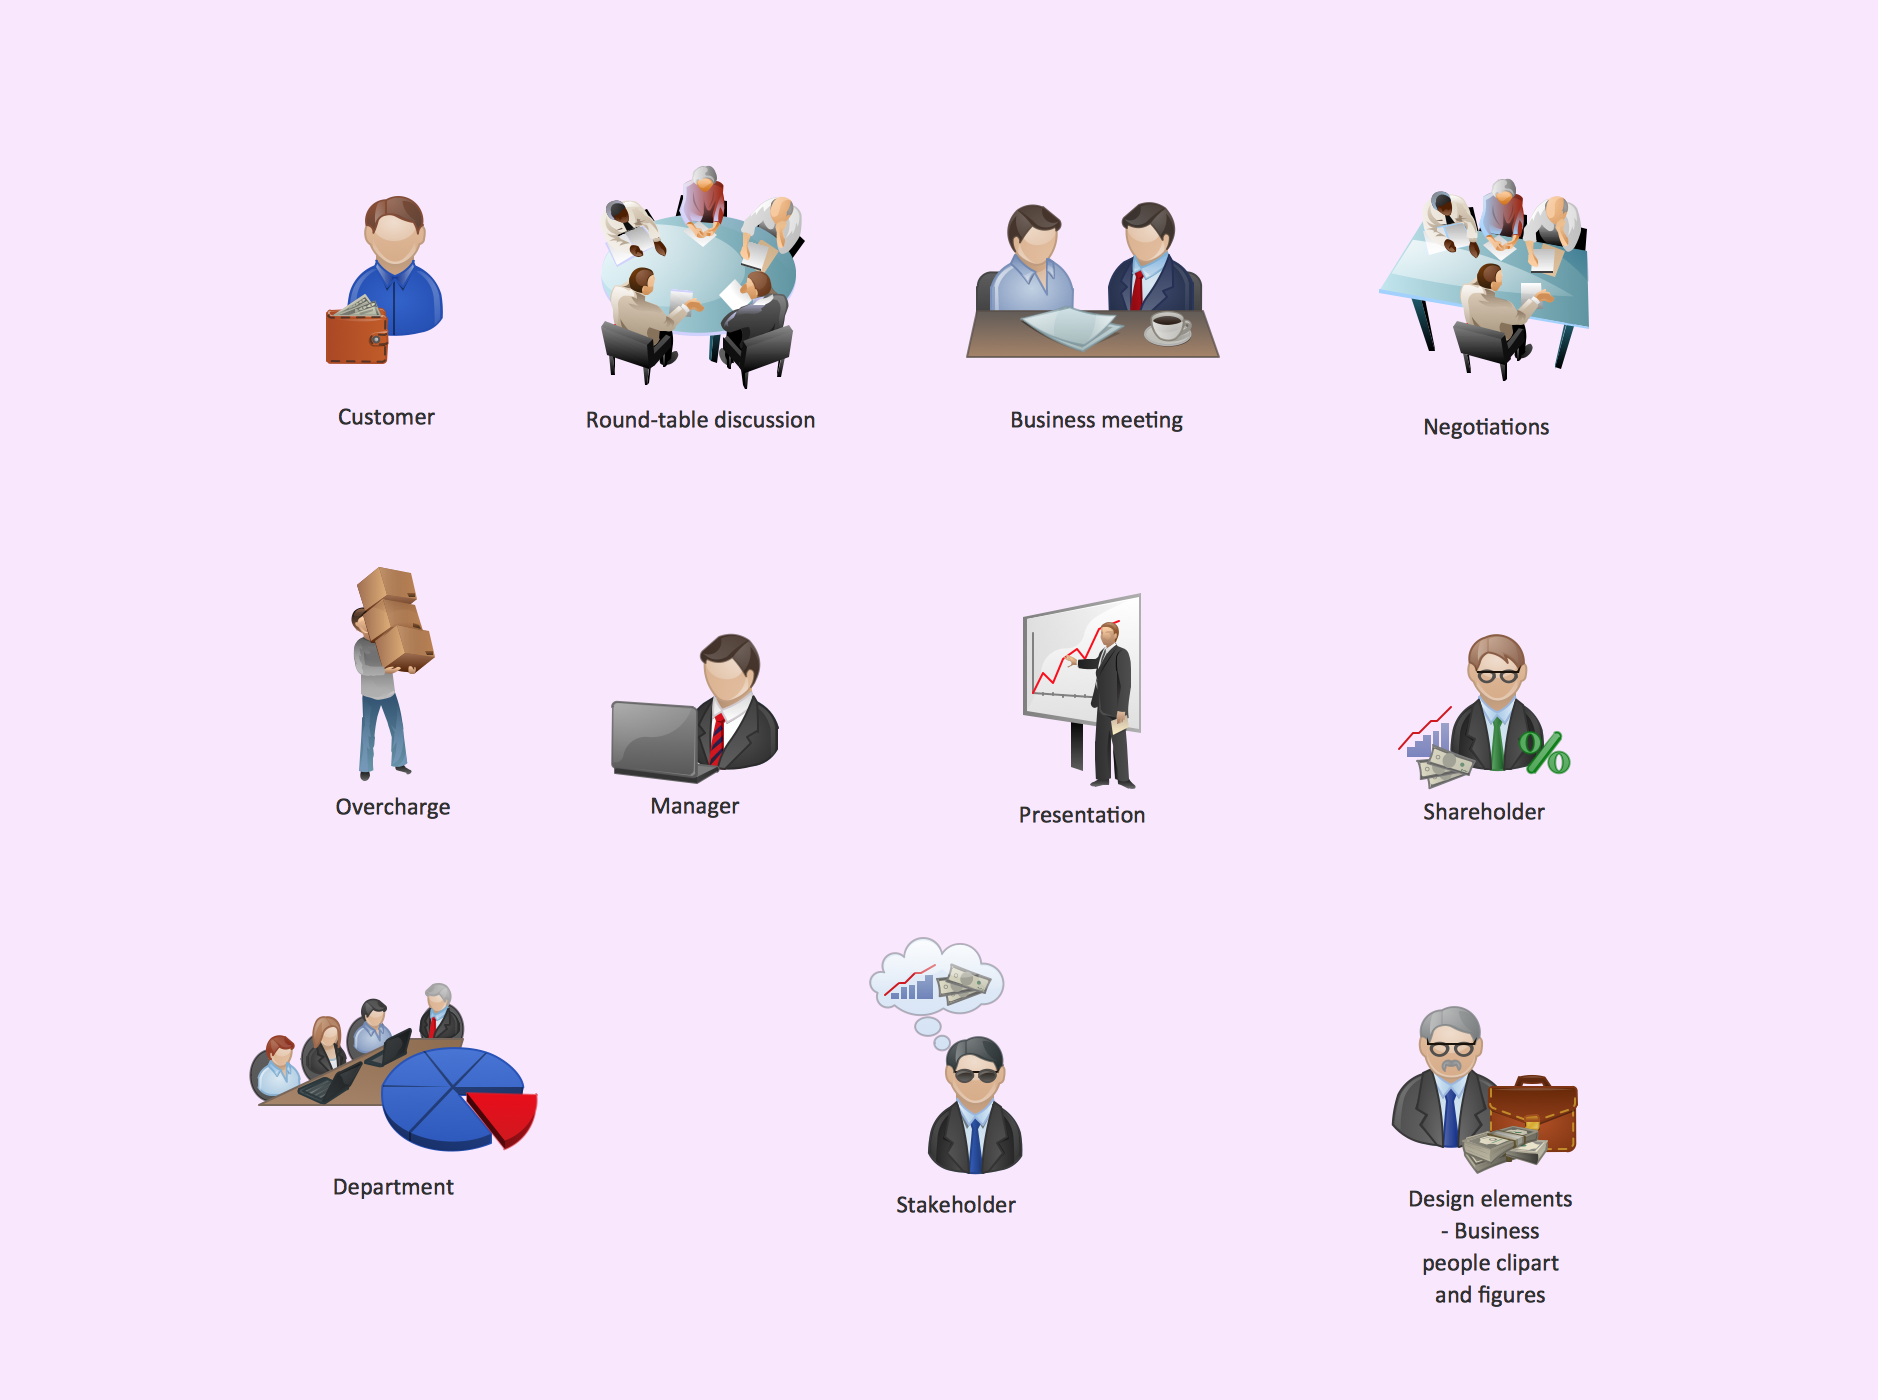 People panda free images. Business clipart avatar